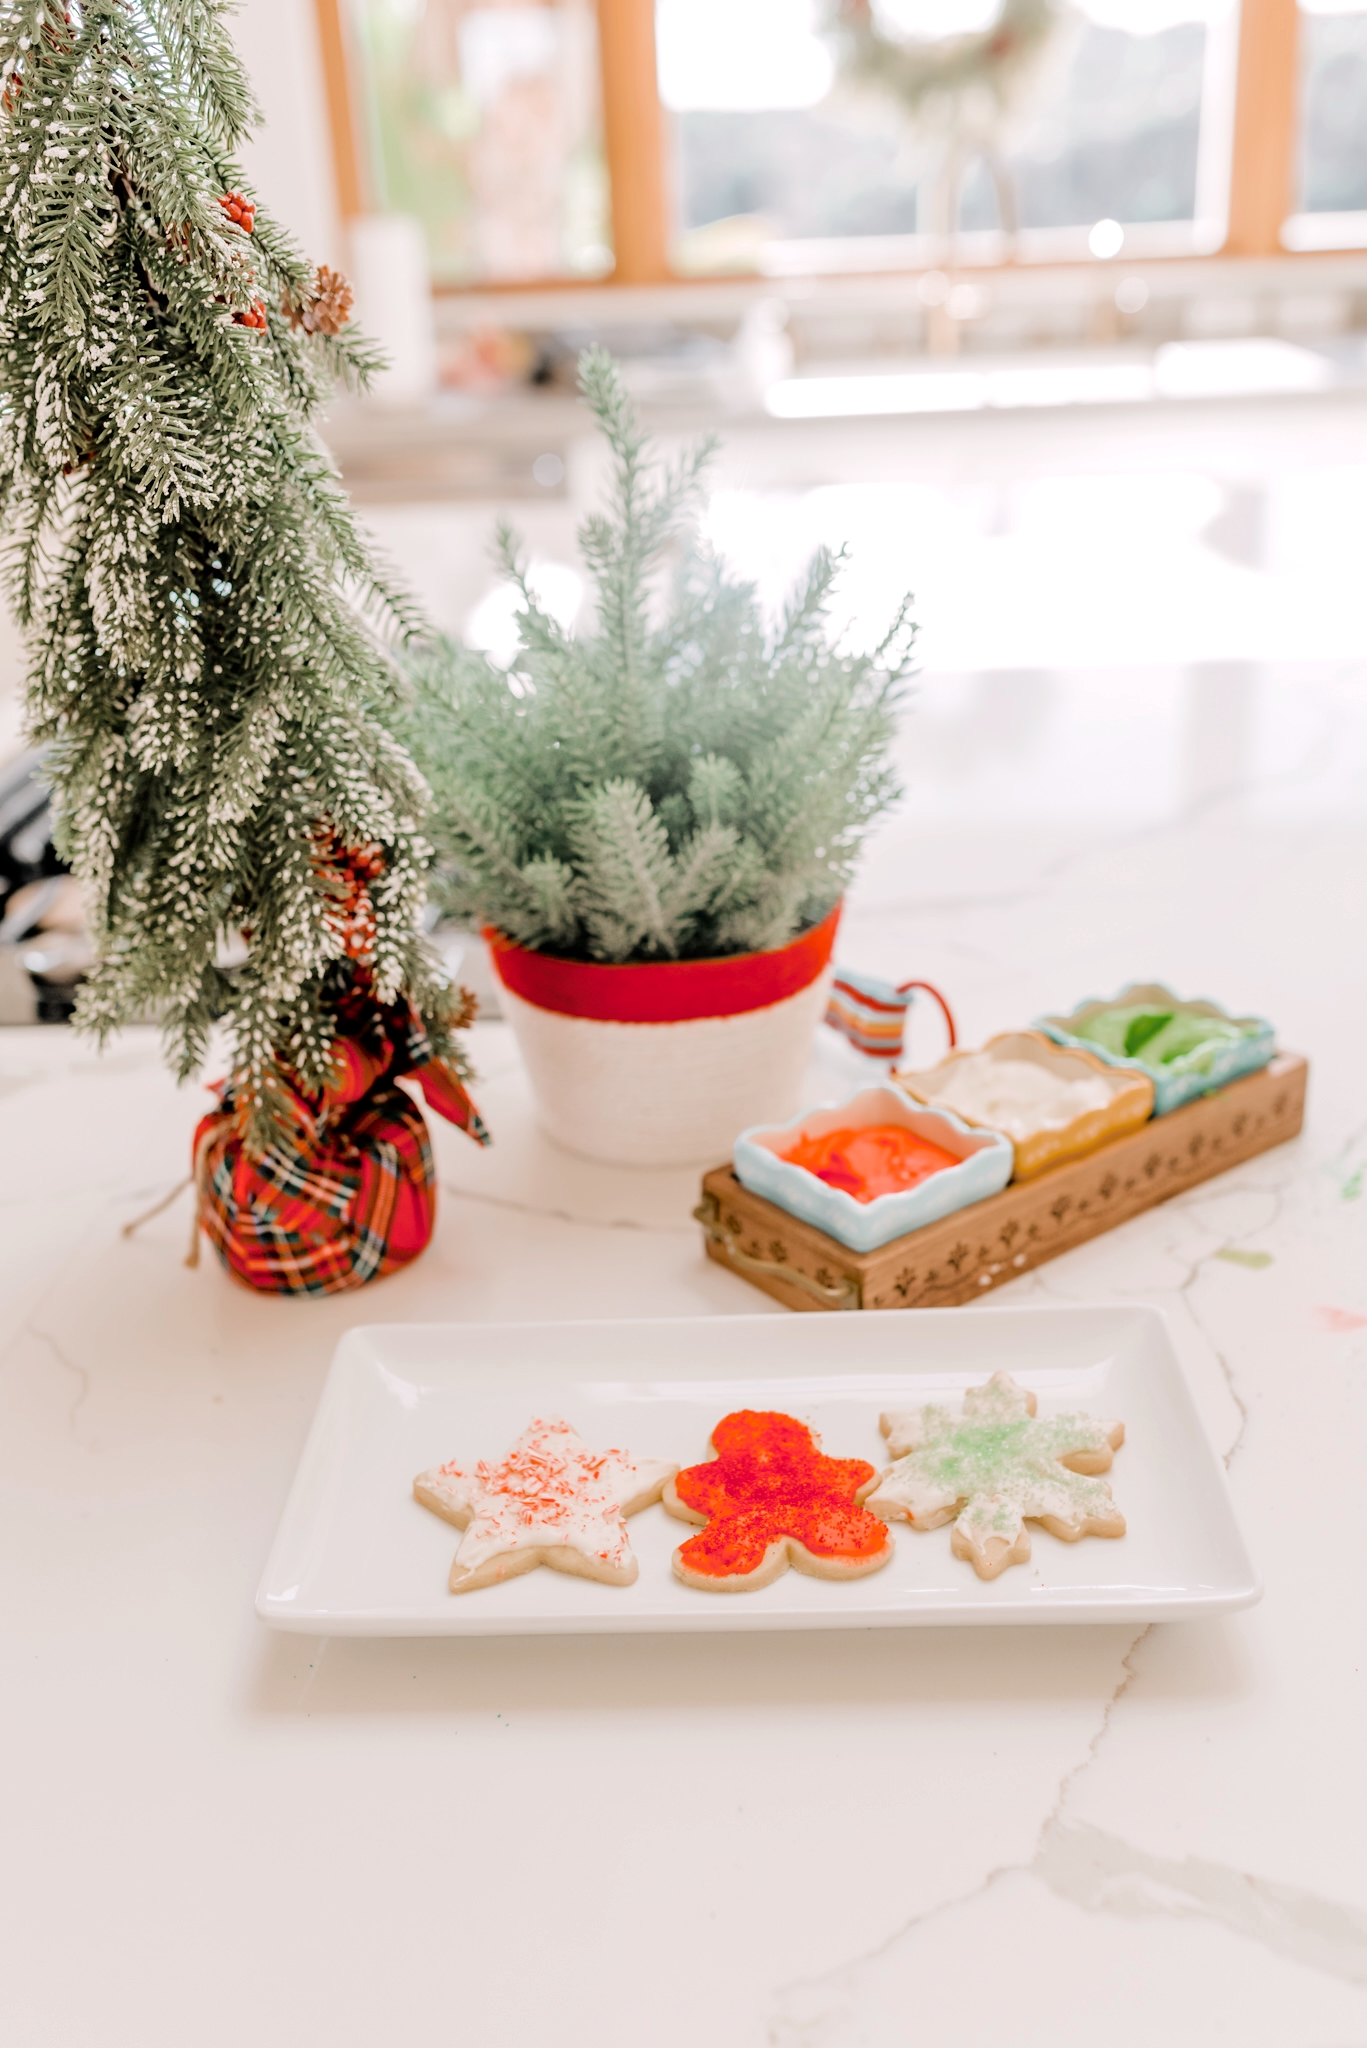 Holiday Traditions with Walmart by popular San Diego lifestyle blog, Navy Grace: image of Christmas shaped sugar cookies on a white rectangular dish.